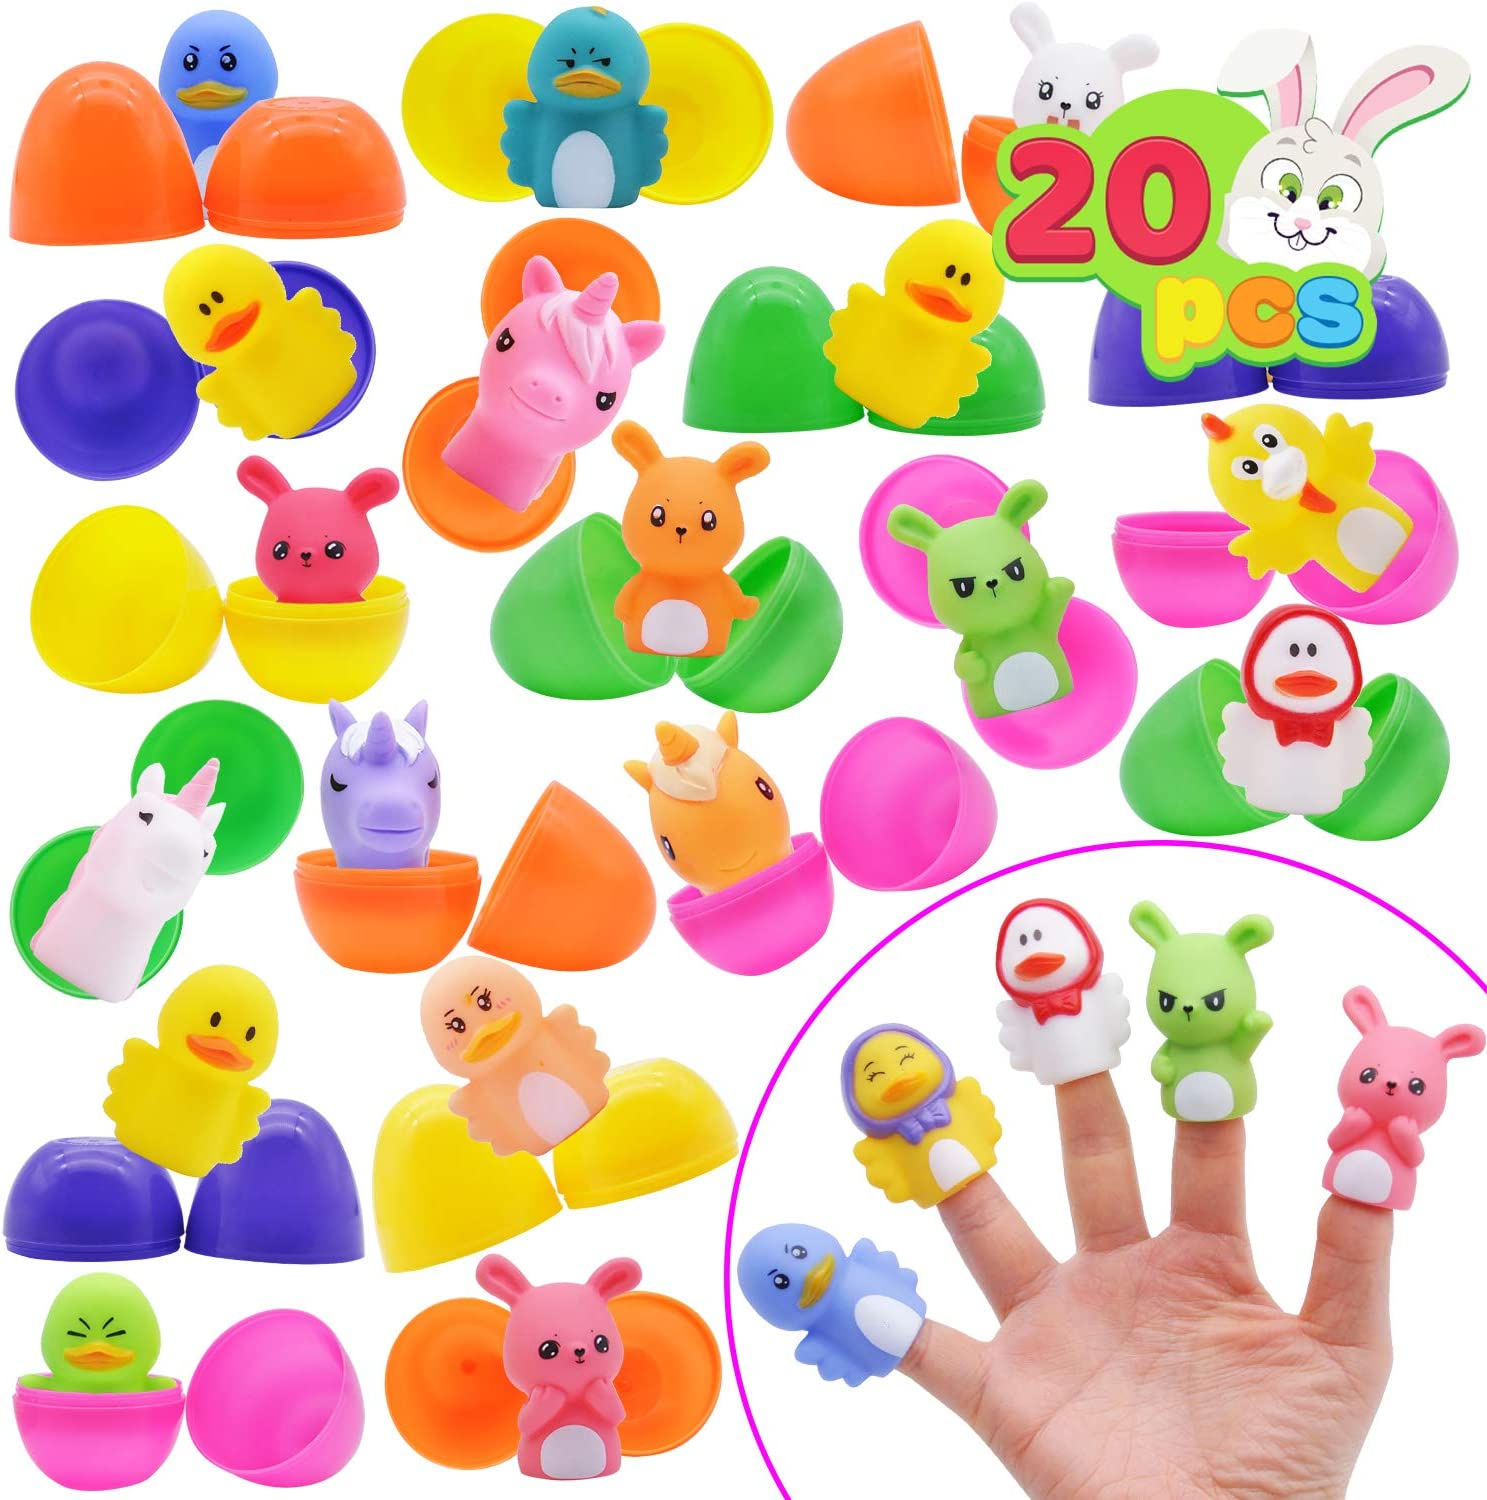 """20 PCs 2 3/4"""" Finger Puppet Easter Eggs for Easter Theme Party Favor, Easter Eggs Hunt, Easter Basket Stuffers Fillers, Classroom Prize Supplies, Hand Cartoon Animal Toys"""